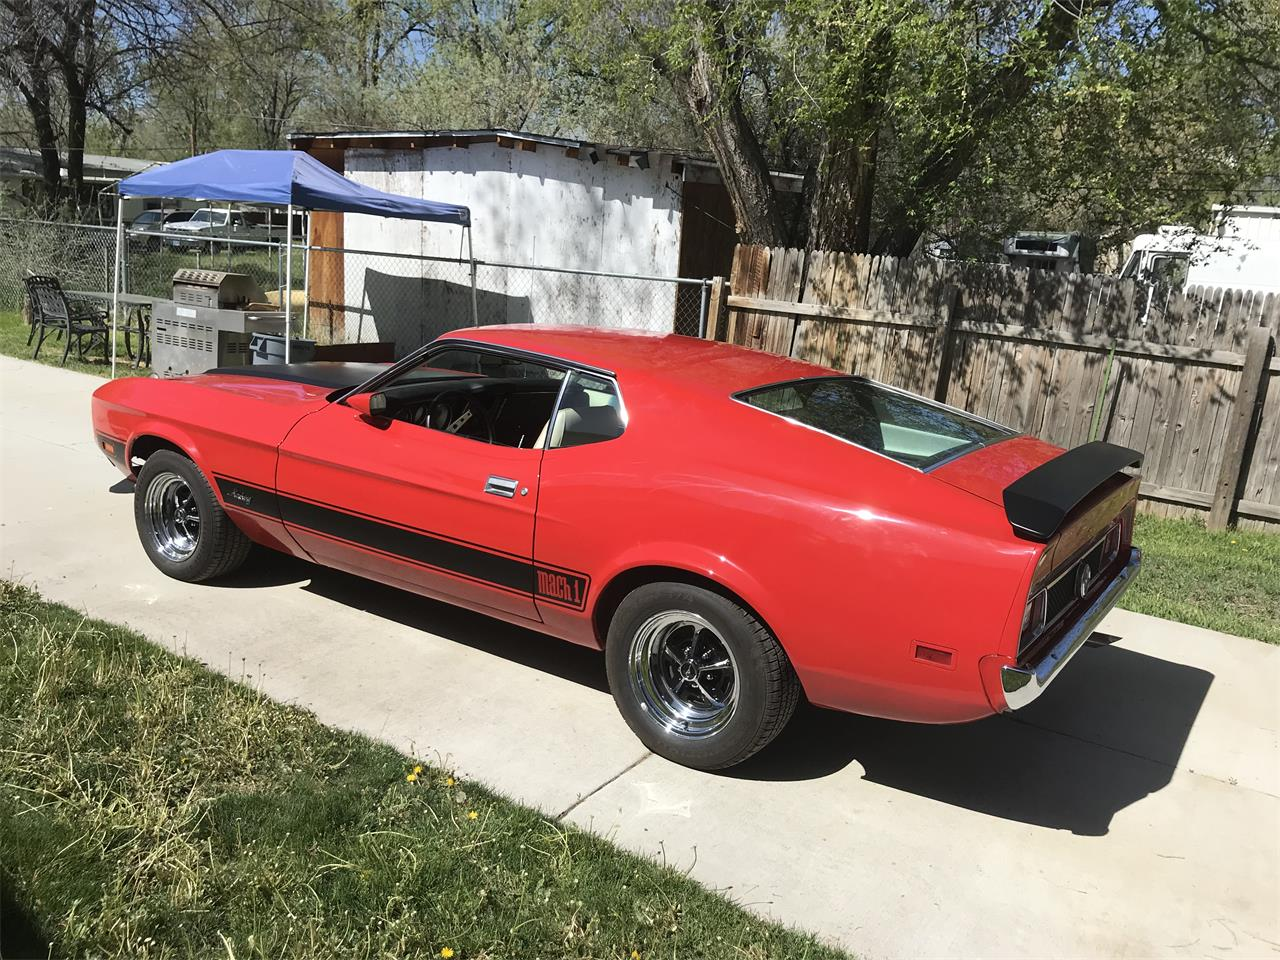 1973 Ford Mustang Mach 1 (CC-1202428) for sale in Carson city, Nevada